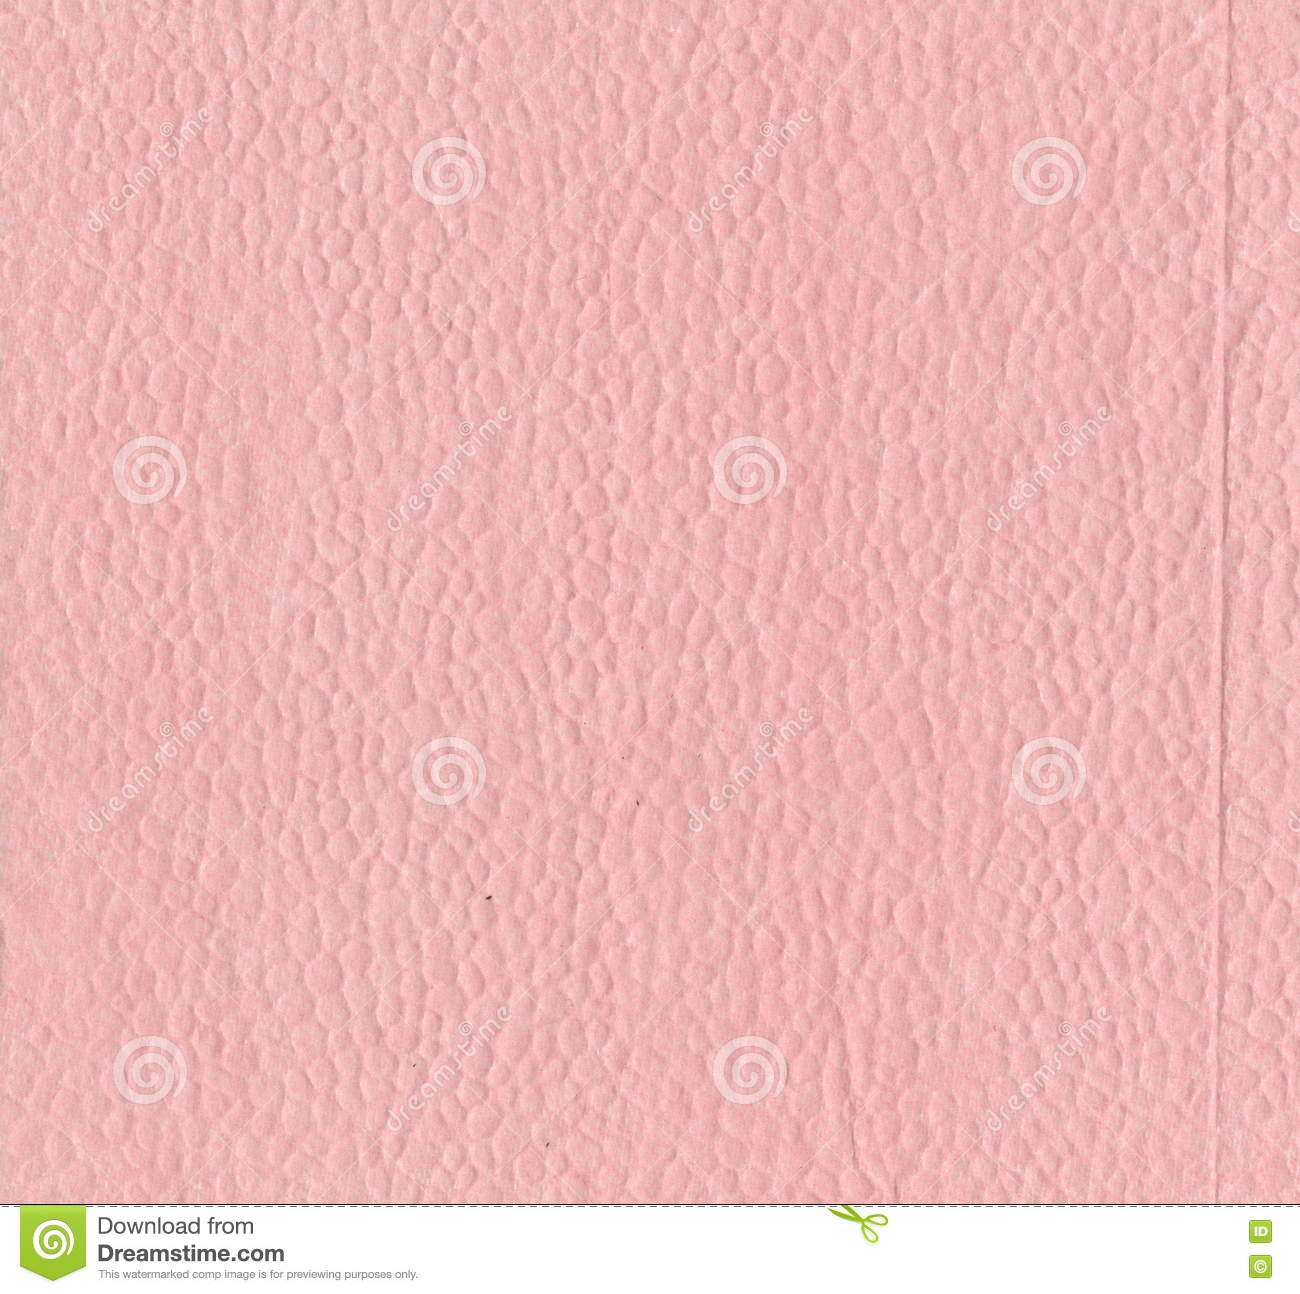 Texture Of White Tissue Paper, Background Or Texture. Pink ...